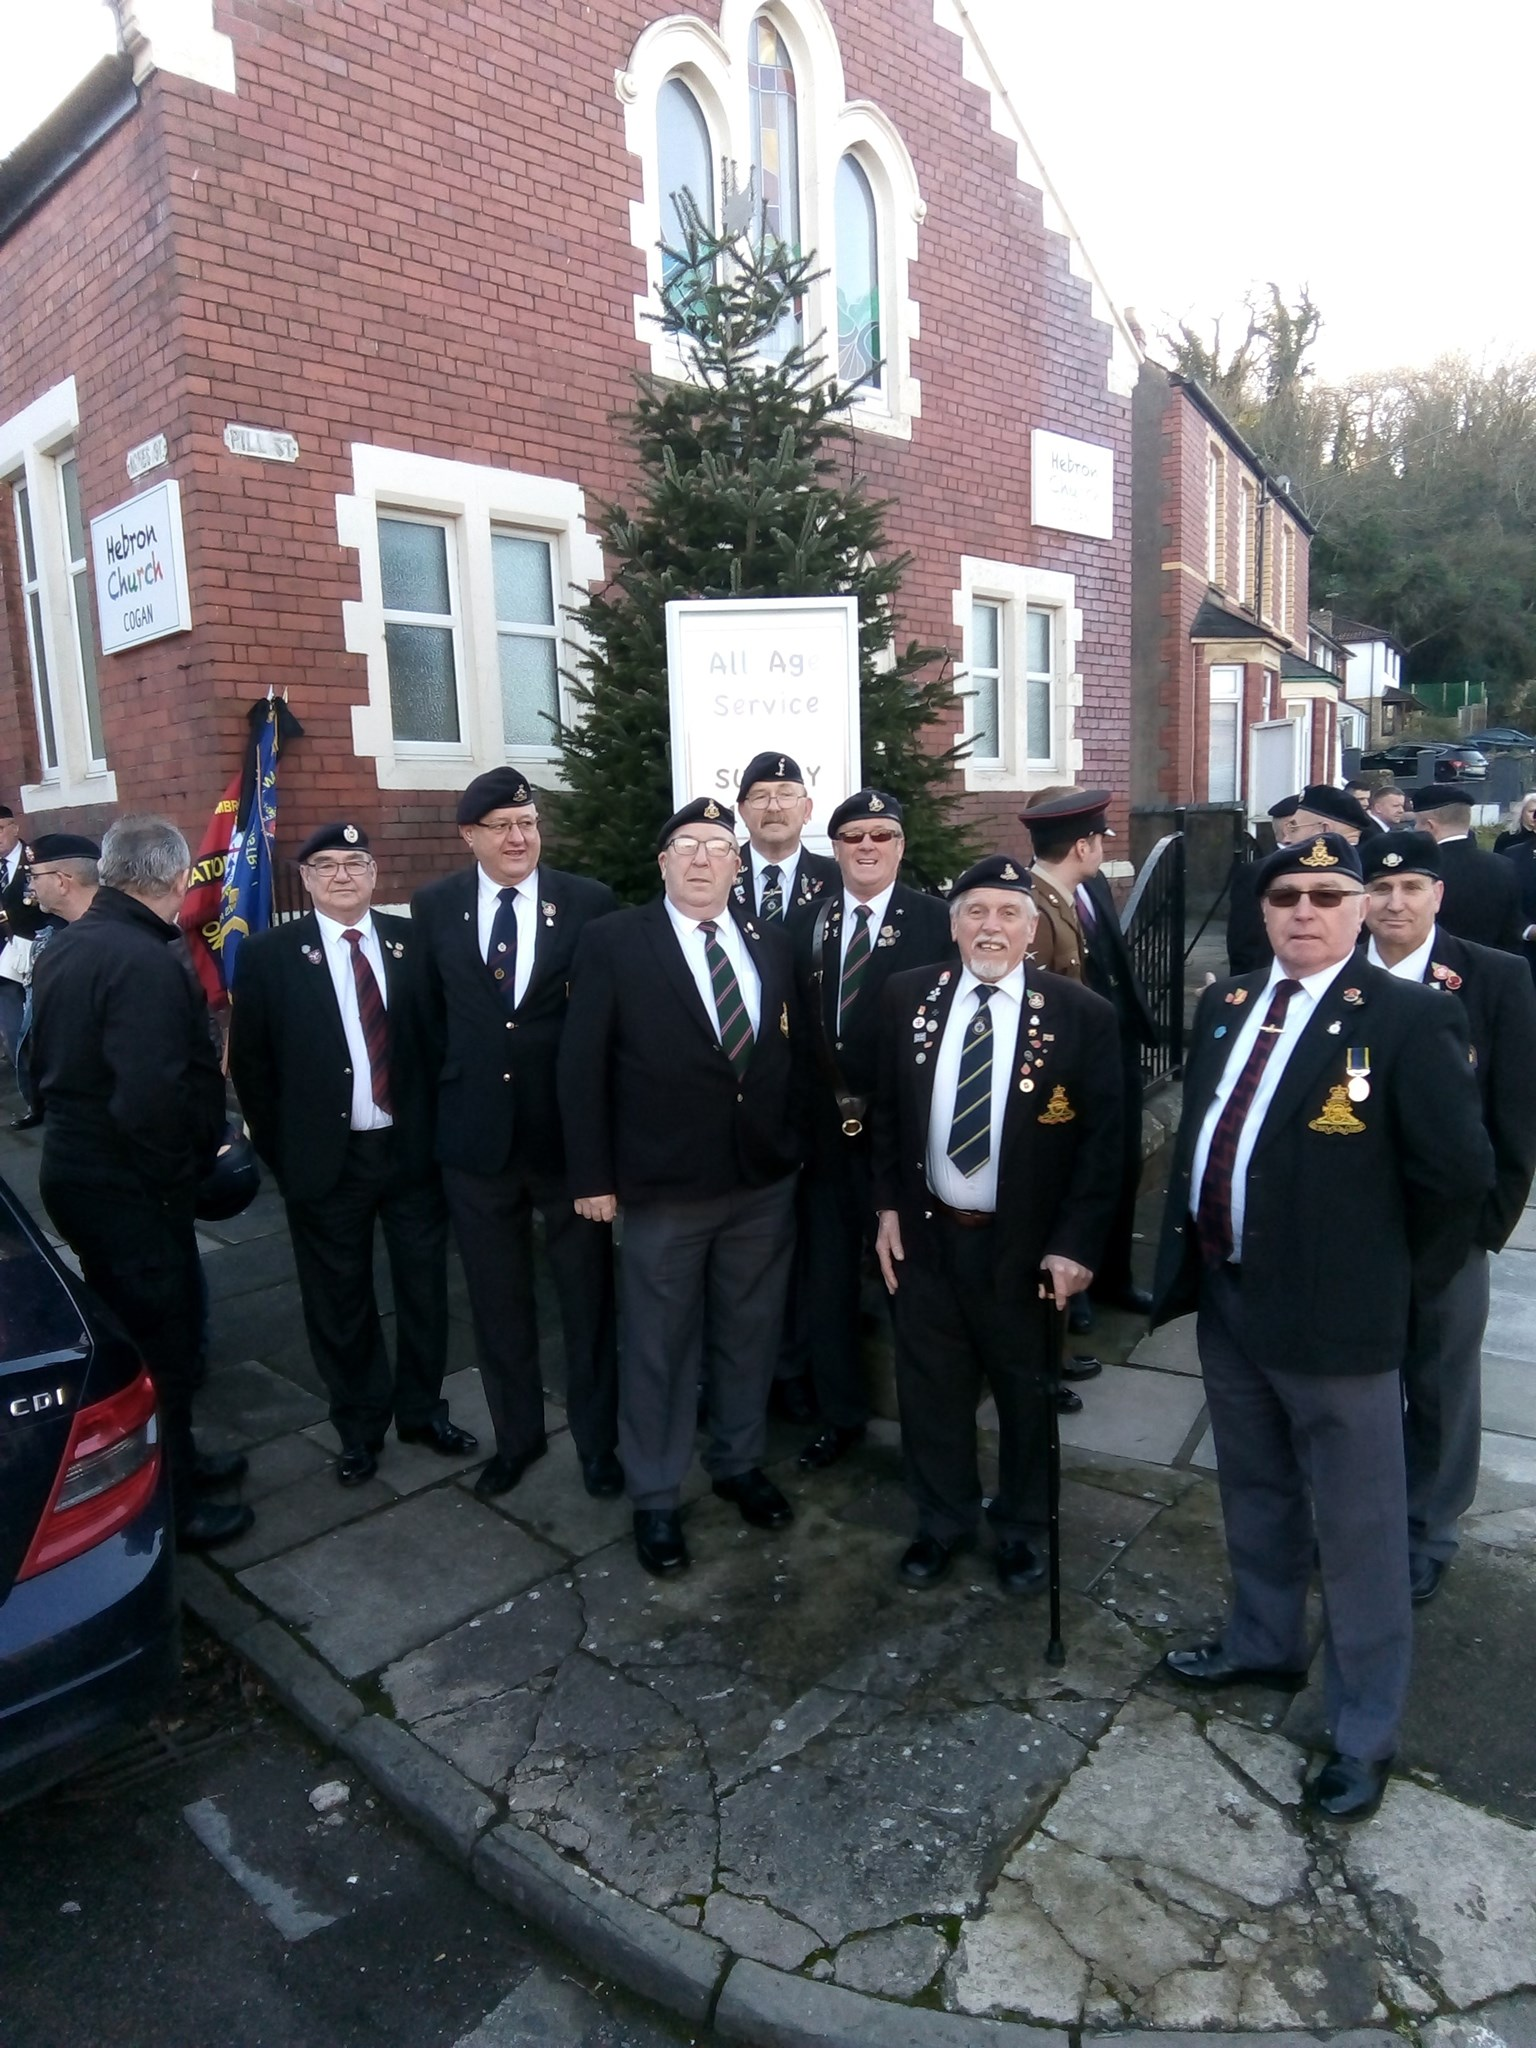 Cwmbran and District ex services Association and others. You did John proud lads! Thankyou